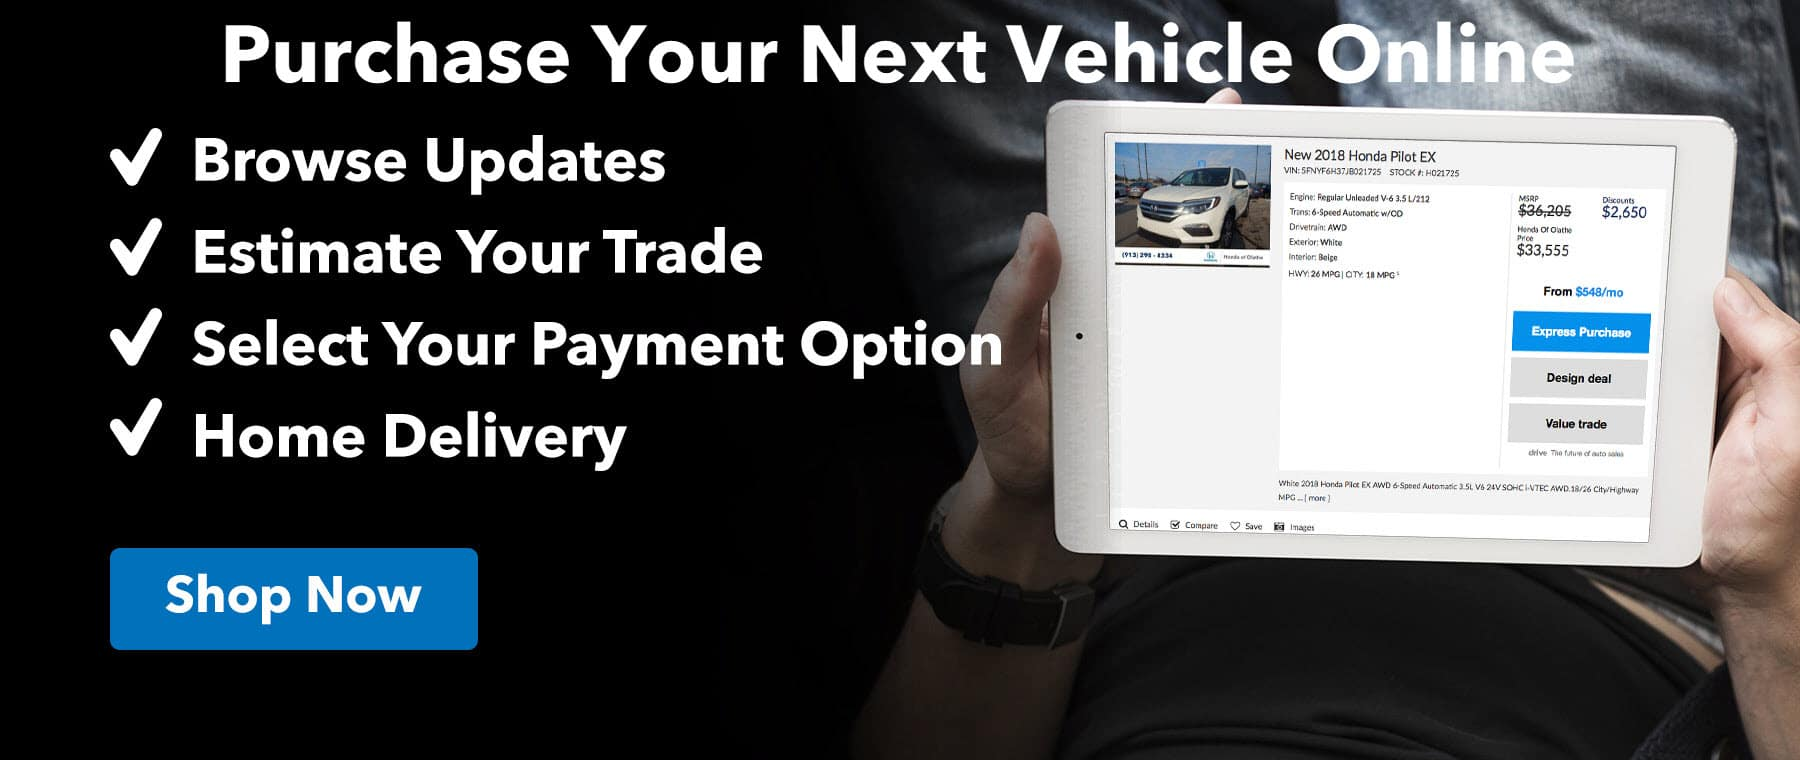 Purchase Your Next Vehicle Online at Honda of Olathe